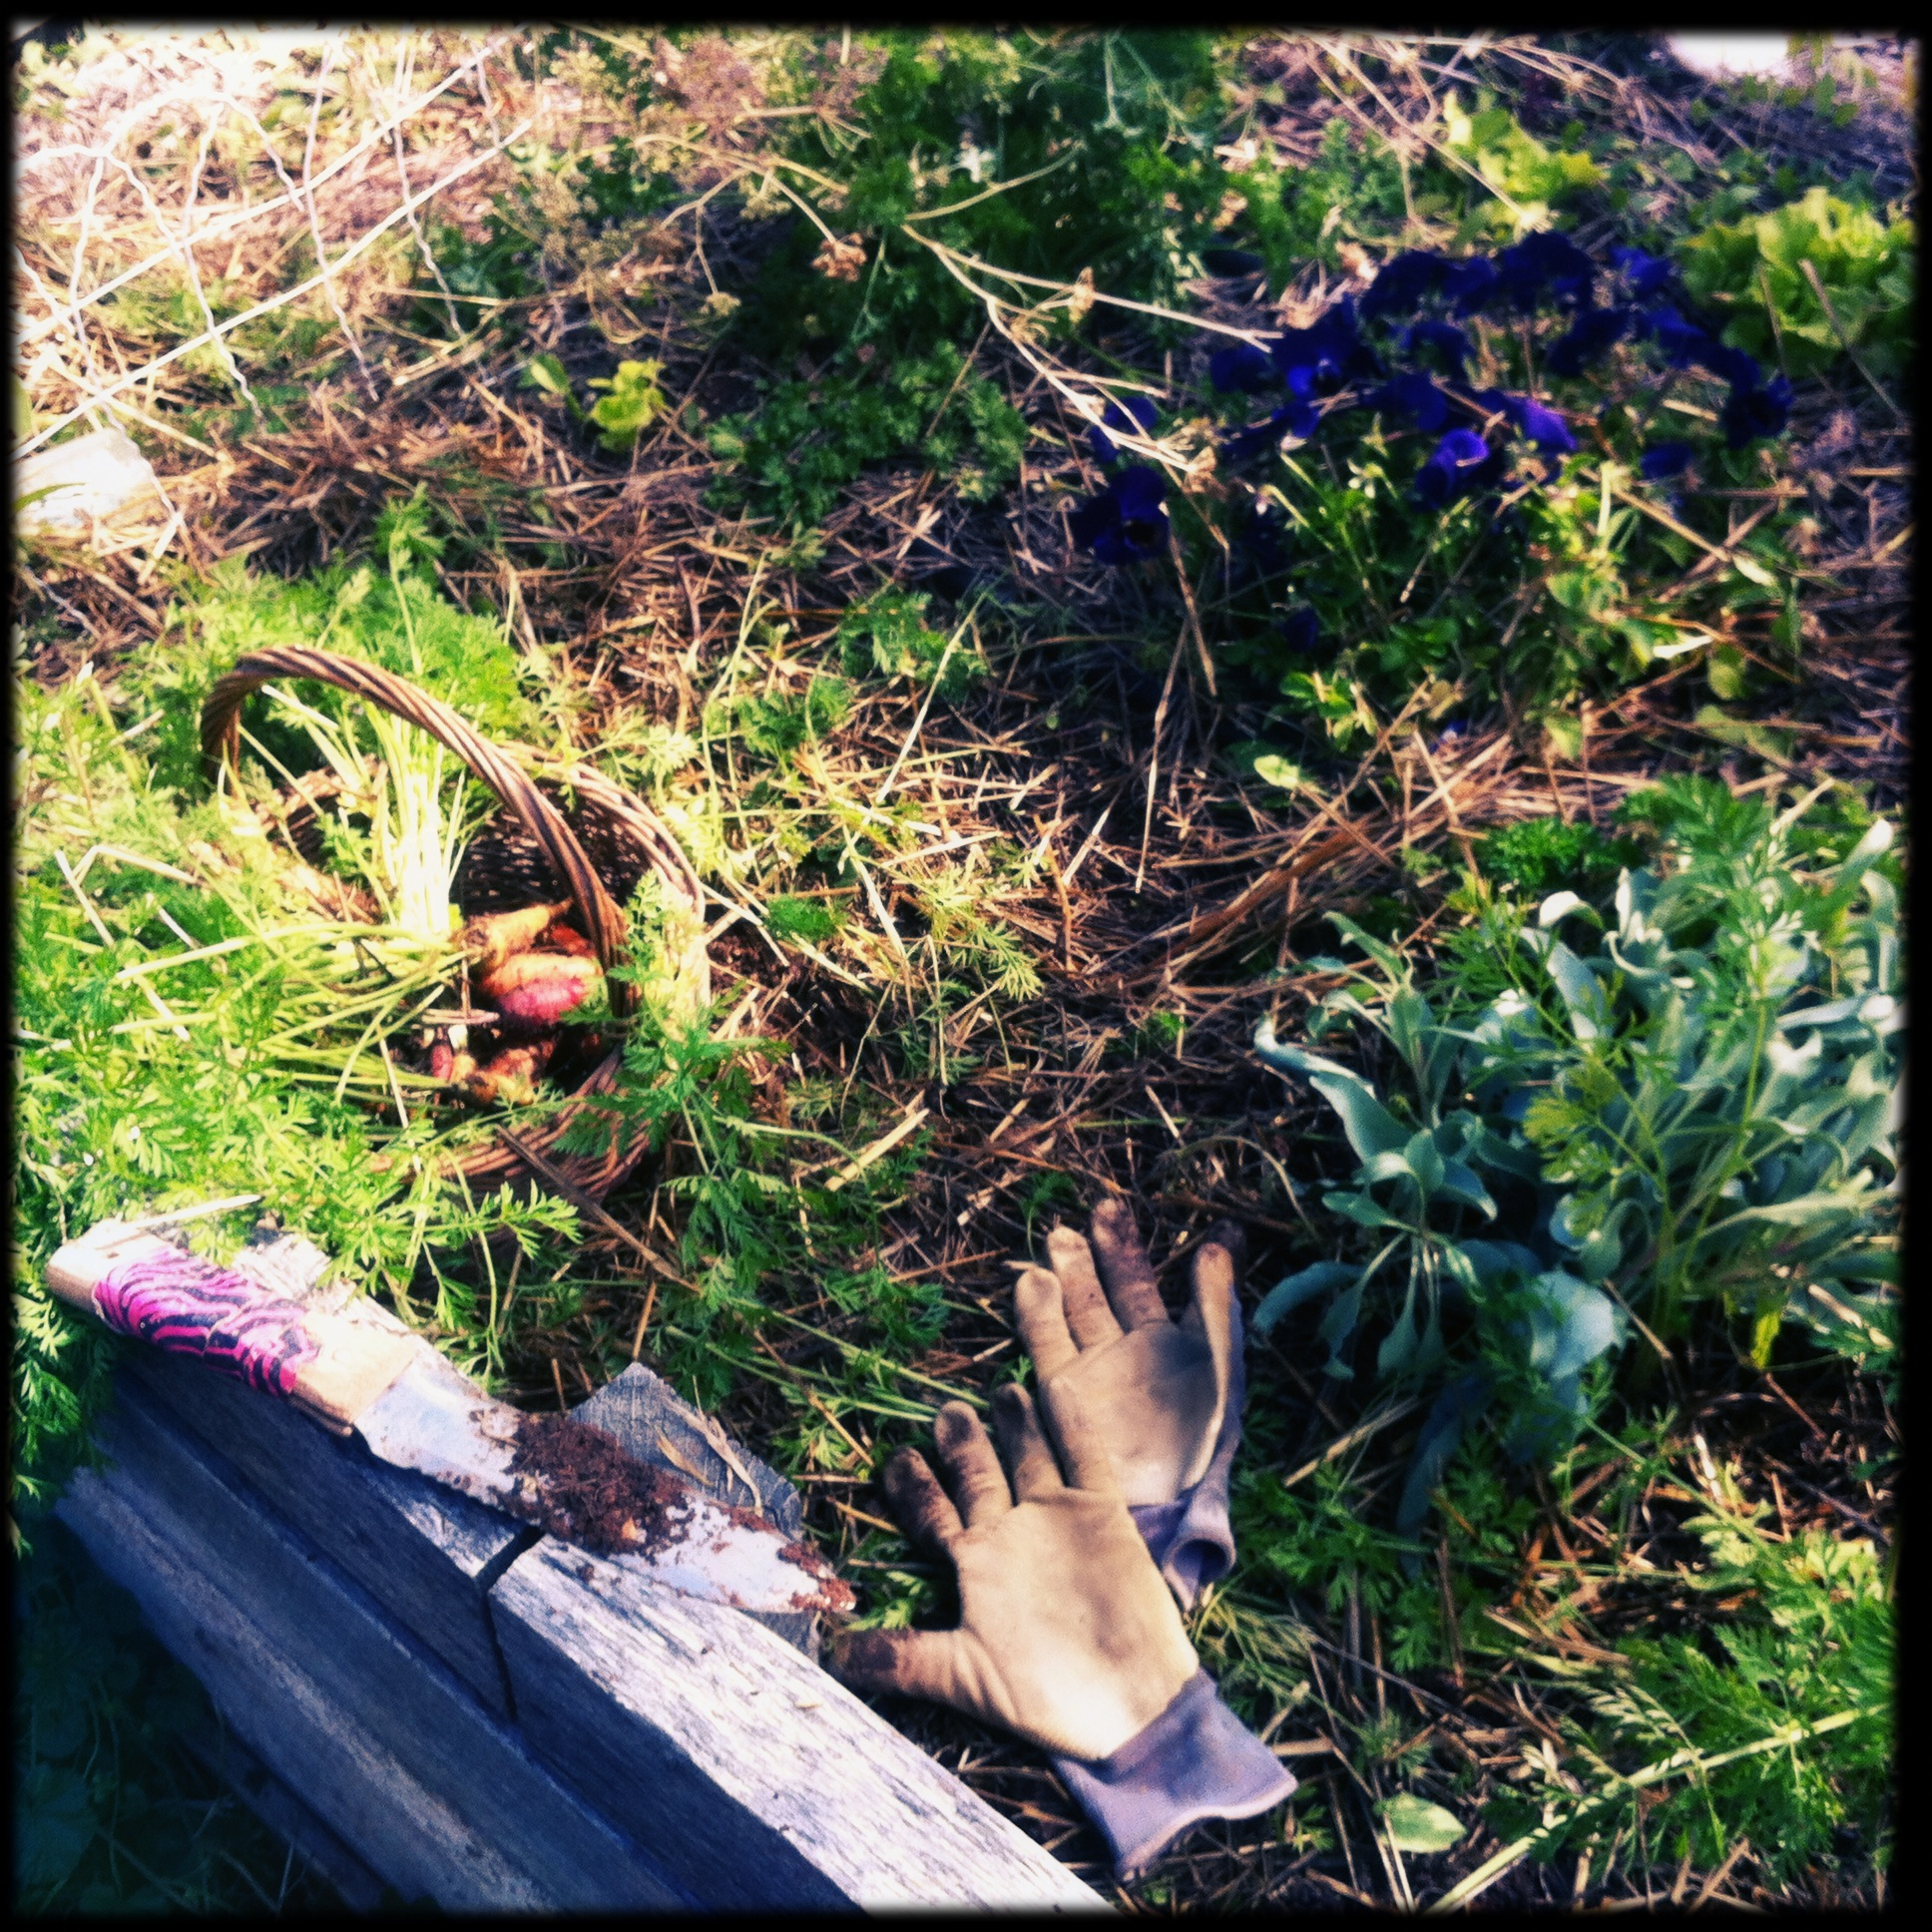 Gloves and digger in the garden.